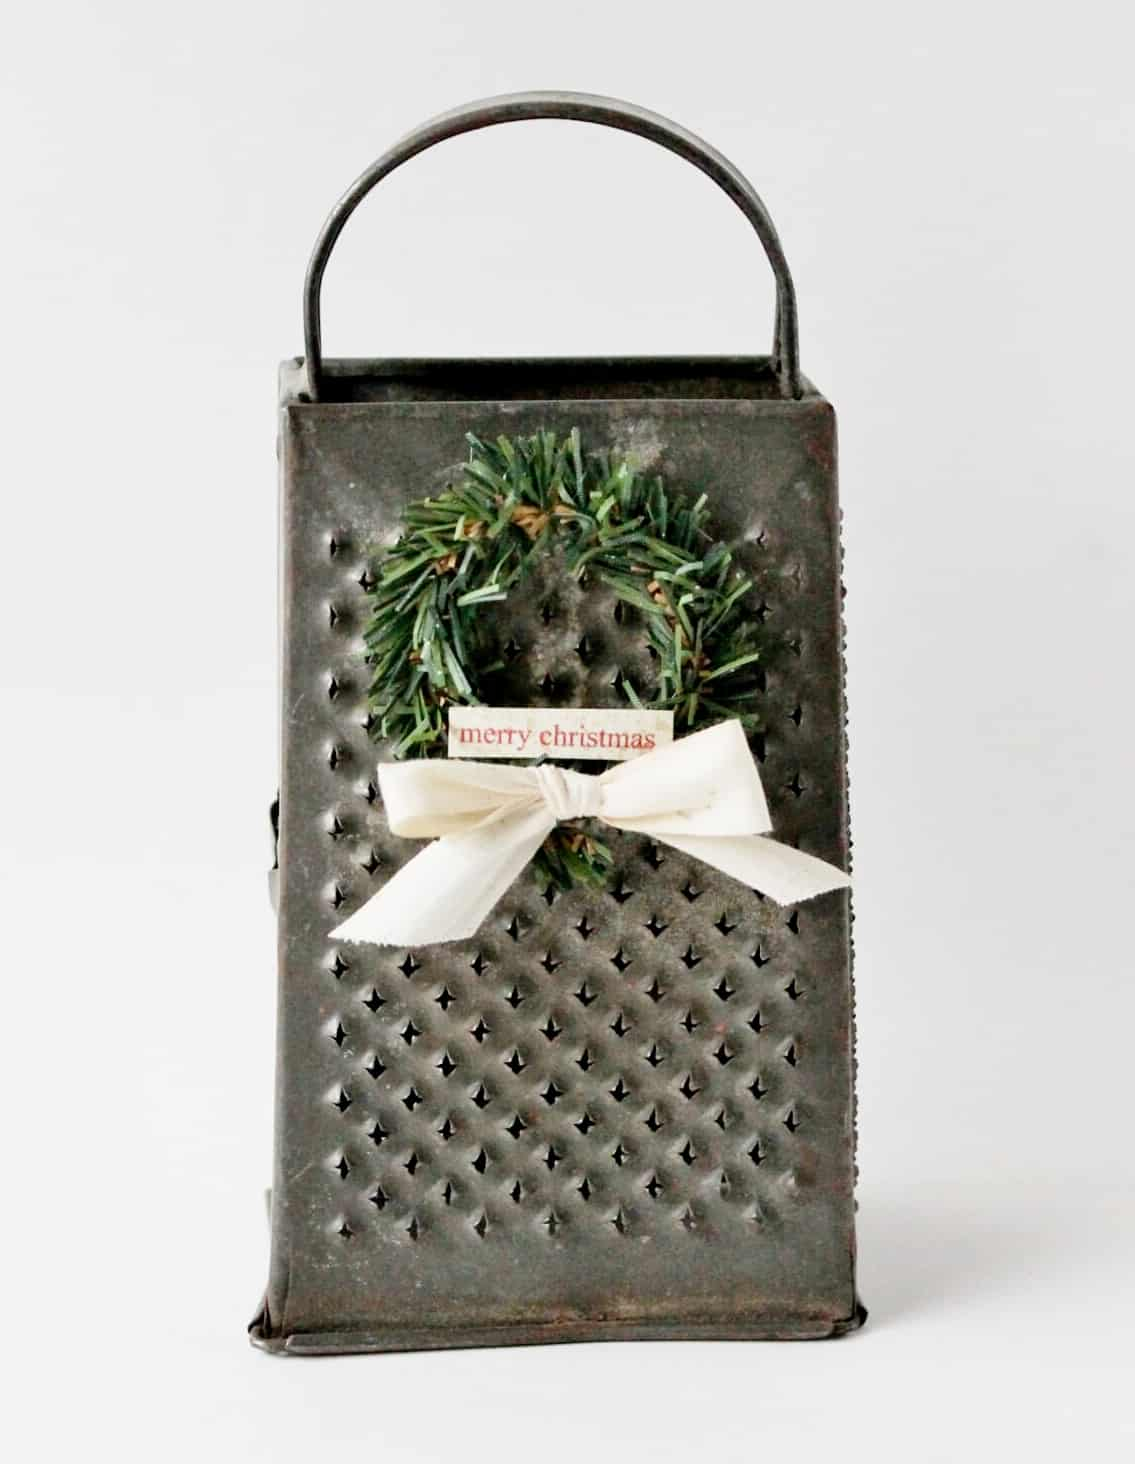 An old vintage grater decorated with a mini wreath